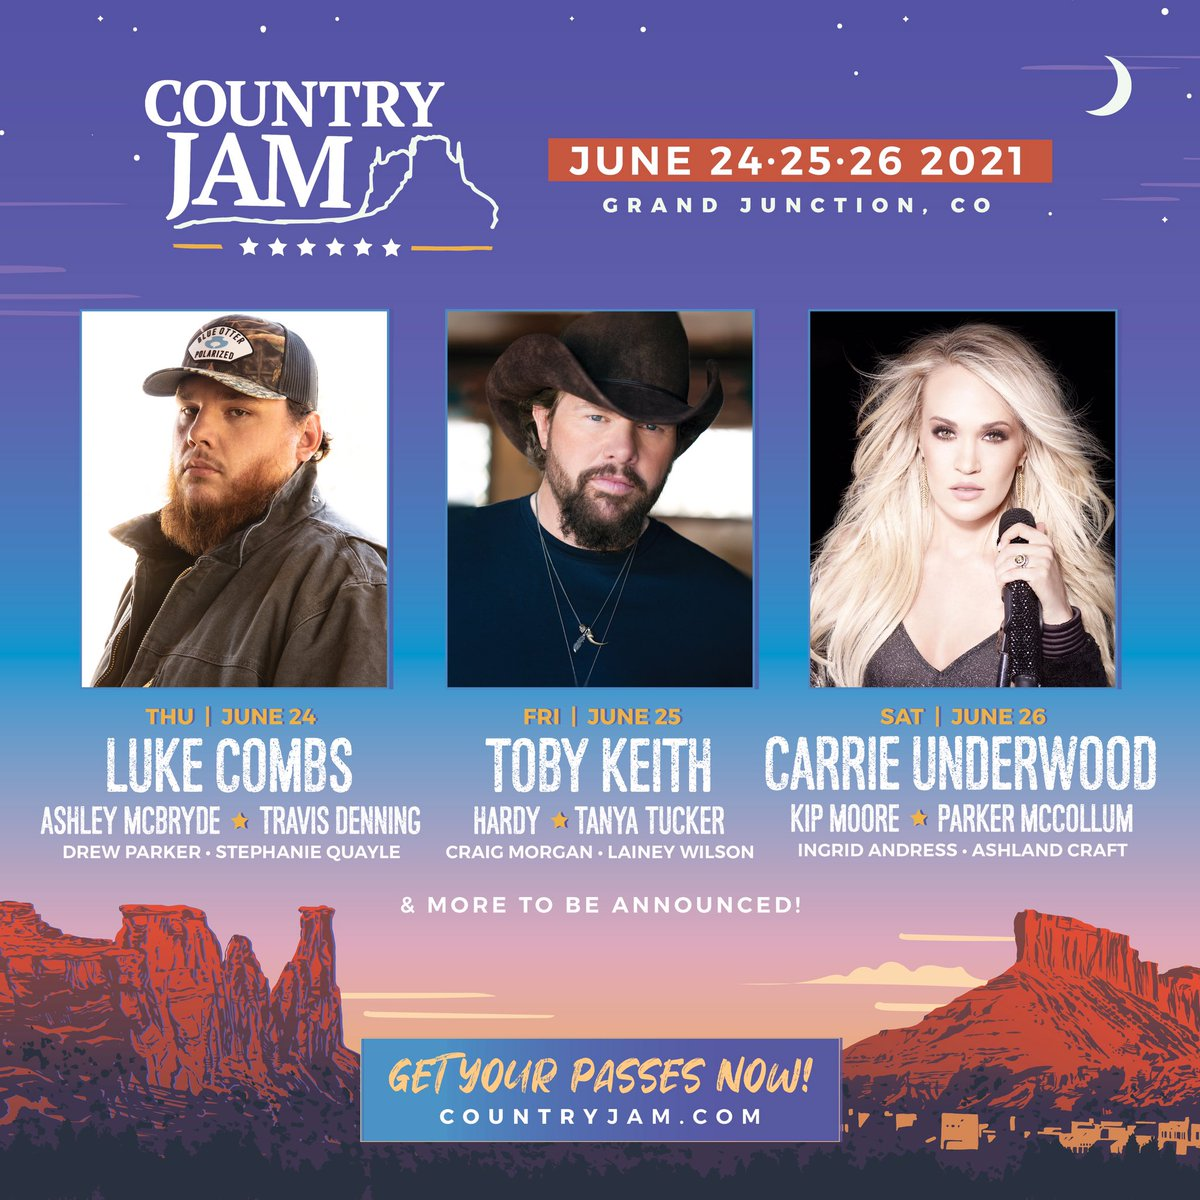 Looking forward to getting back on stage for @CountryJamCO in beautiful Colorado this weekend! Hope to see you there! https://t.co/kU2bEFByzE